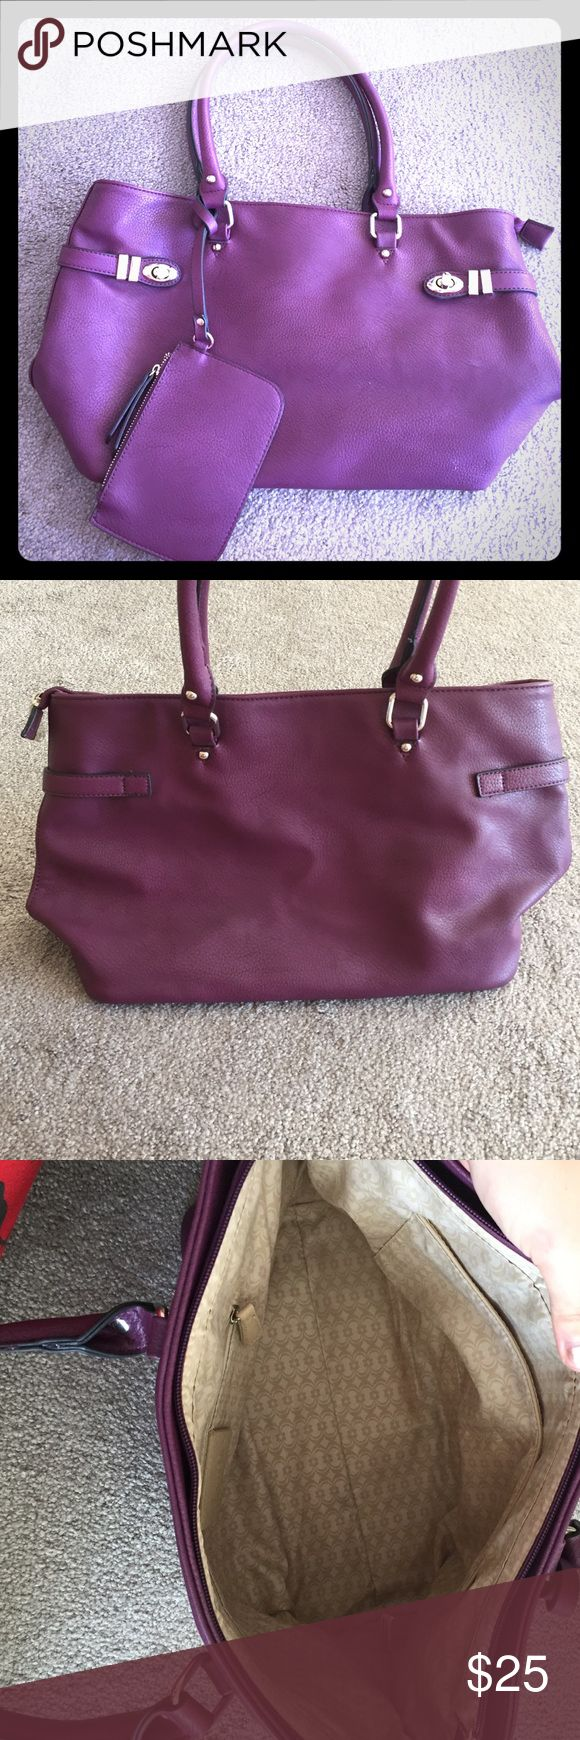 Charming Charlie purple shoulder bag Excellent NWOT condition! Beautiful royal purple and very clean interior. Comes with attached coin purse. Charming Charlie Bags Shoulder Bags